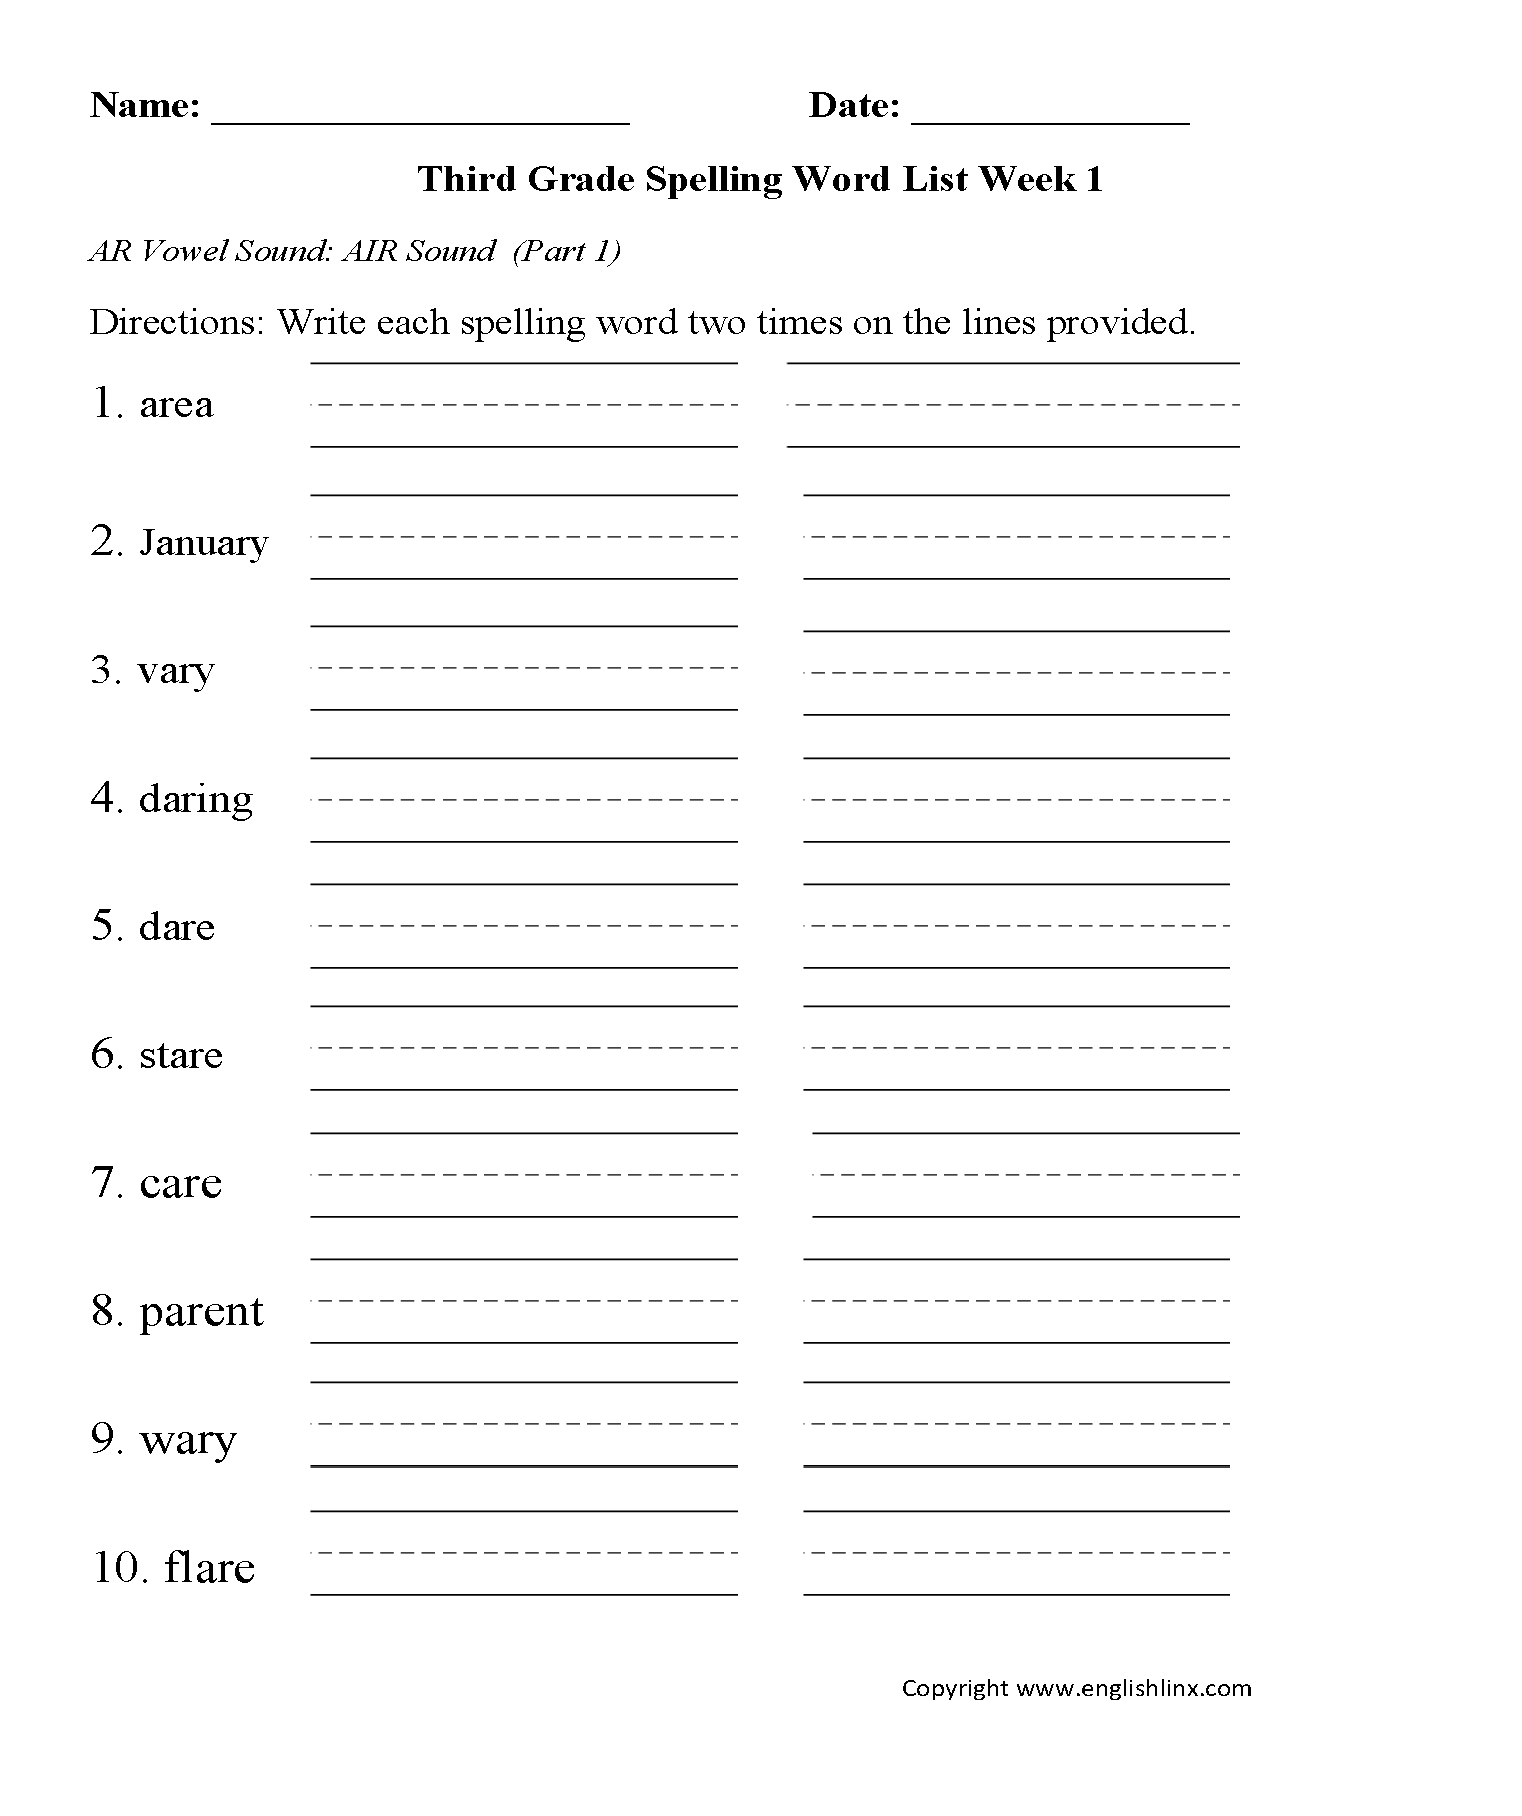 hight resolution of Spelling Worksheets   Third Grade Spelling Words Worksheets